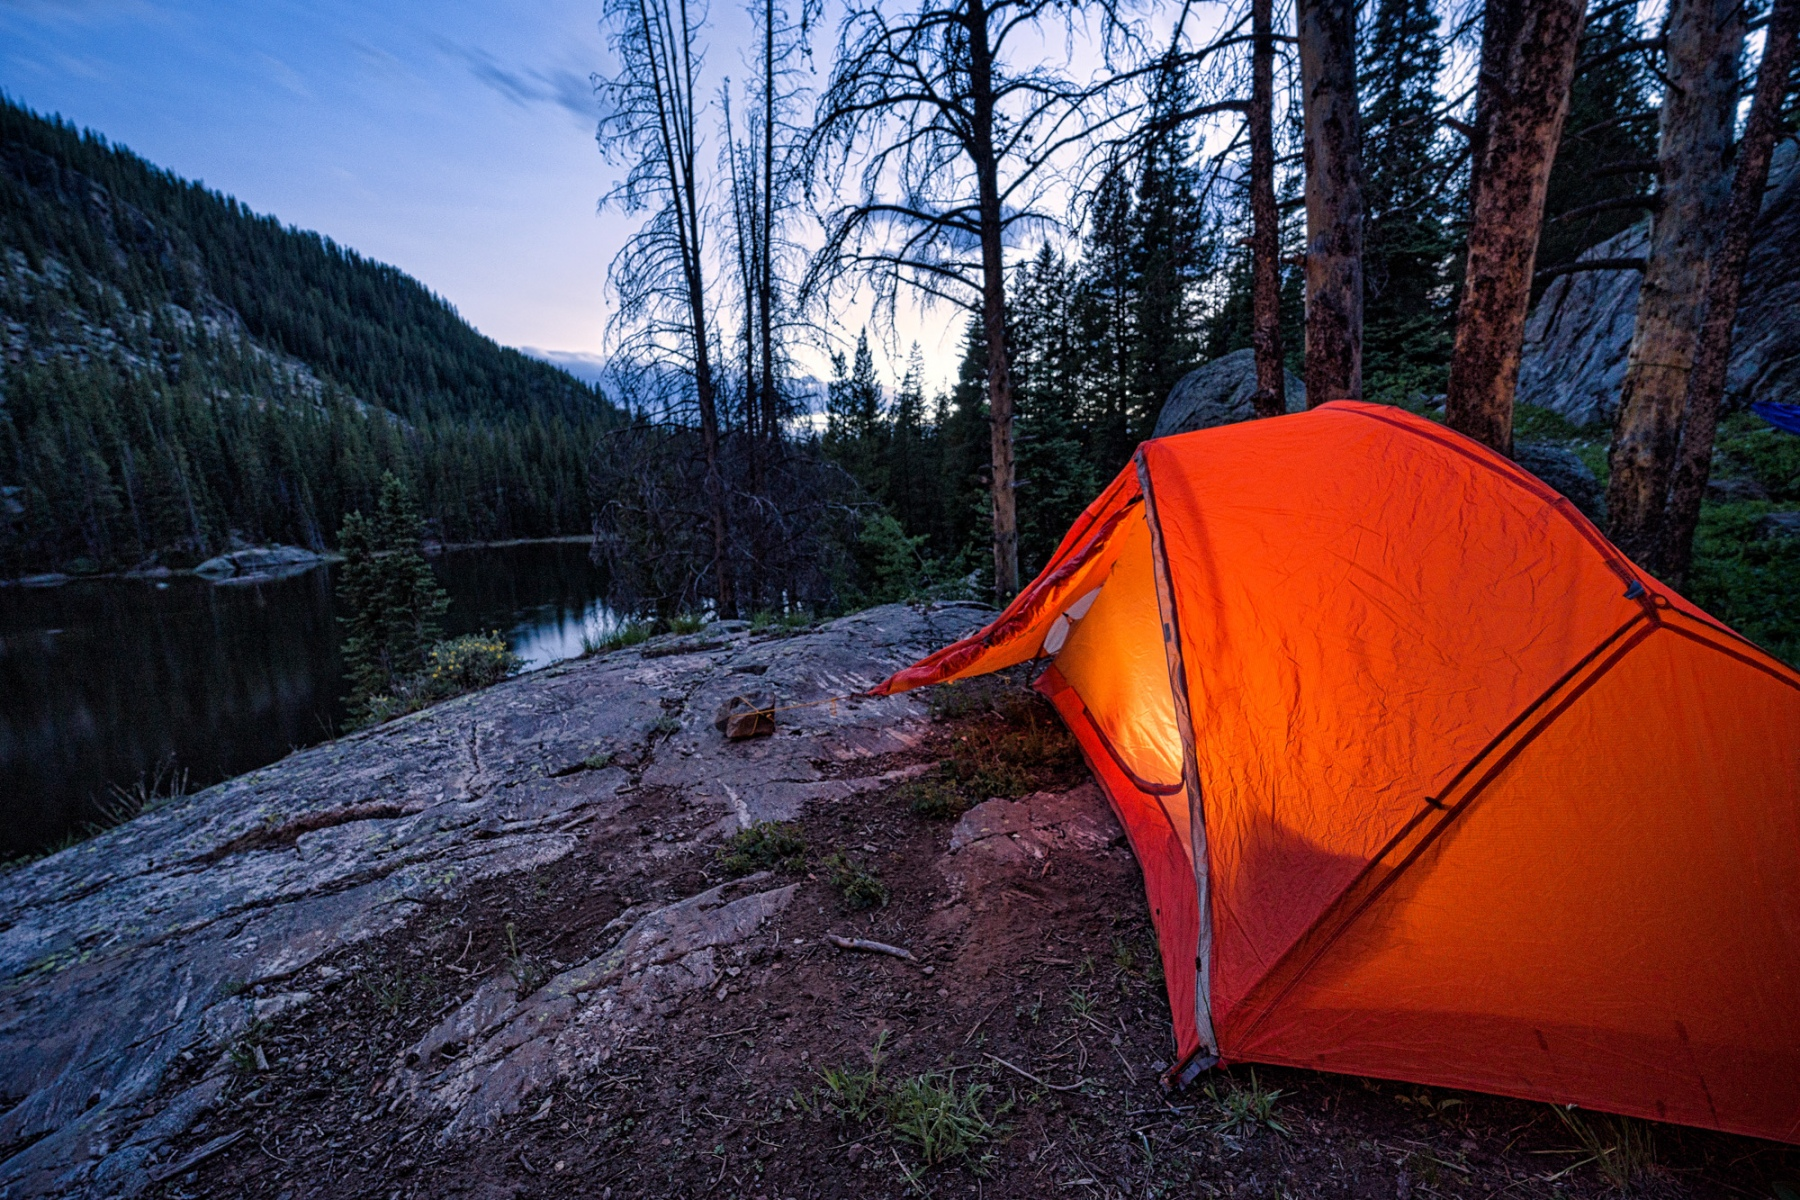 Tent Camping Backpacking Hiking Trip Camp